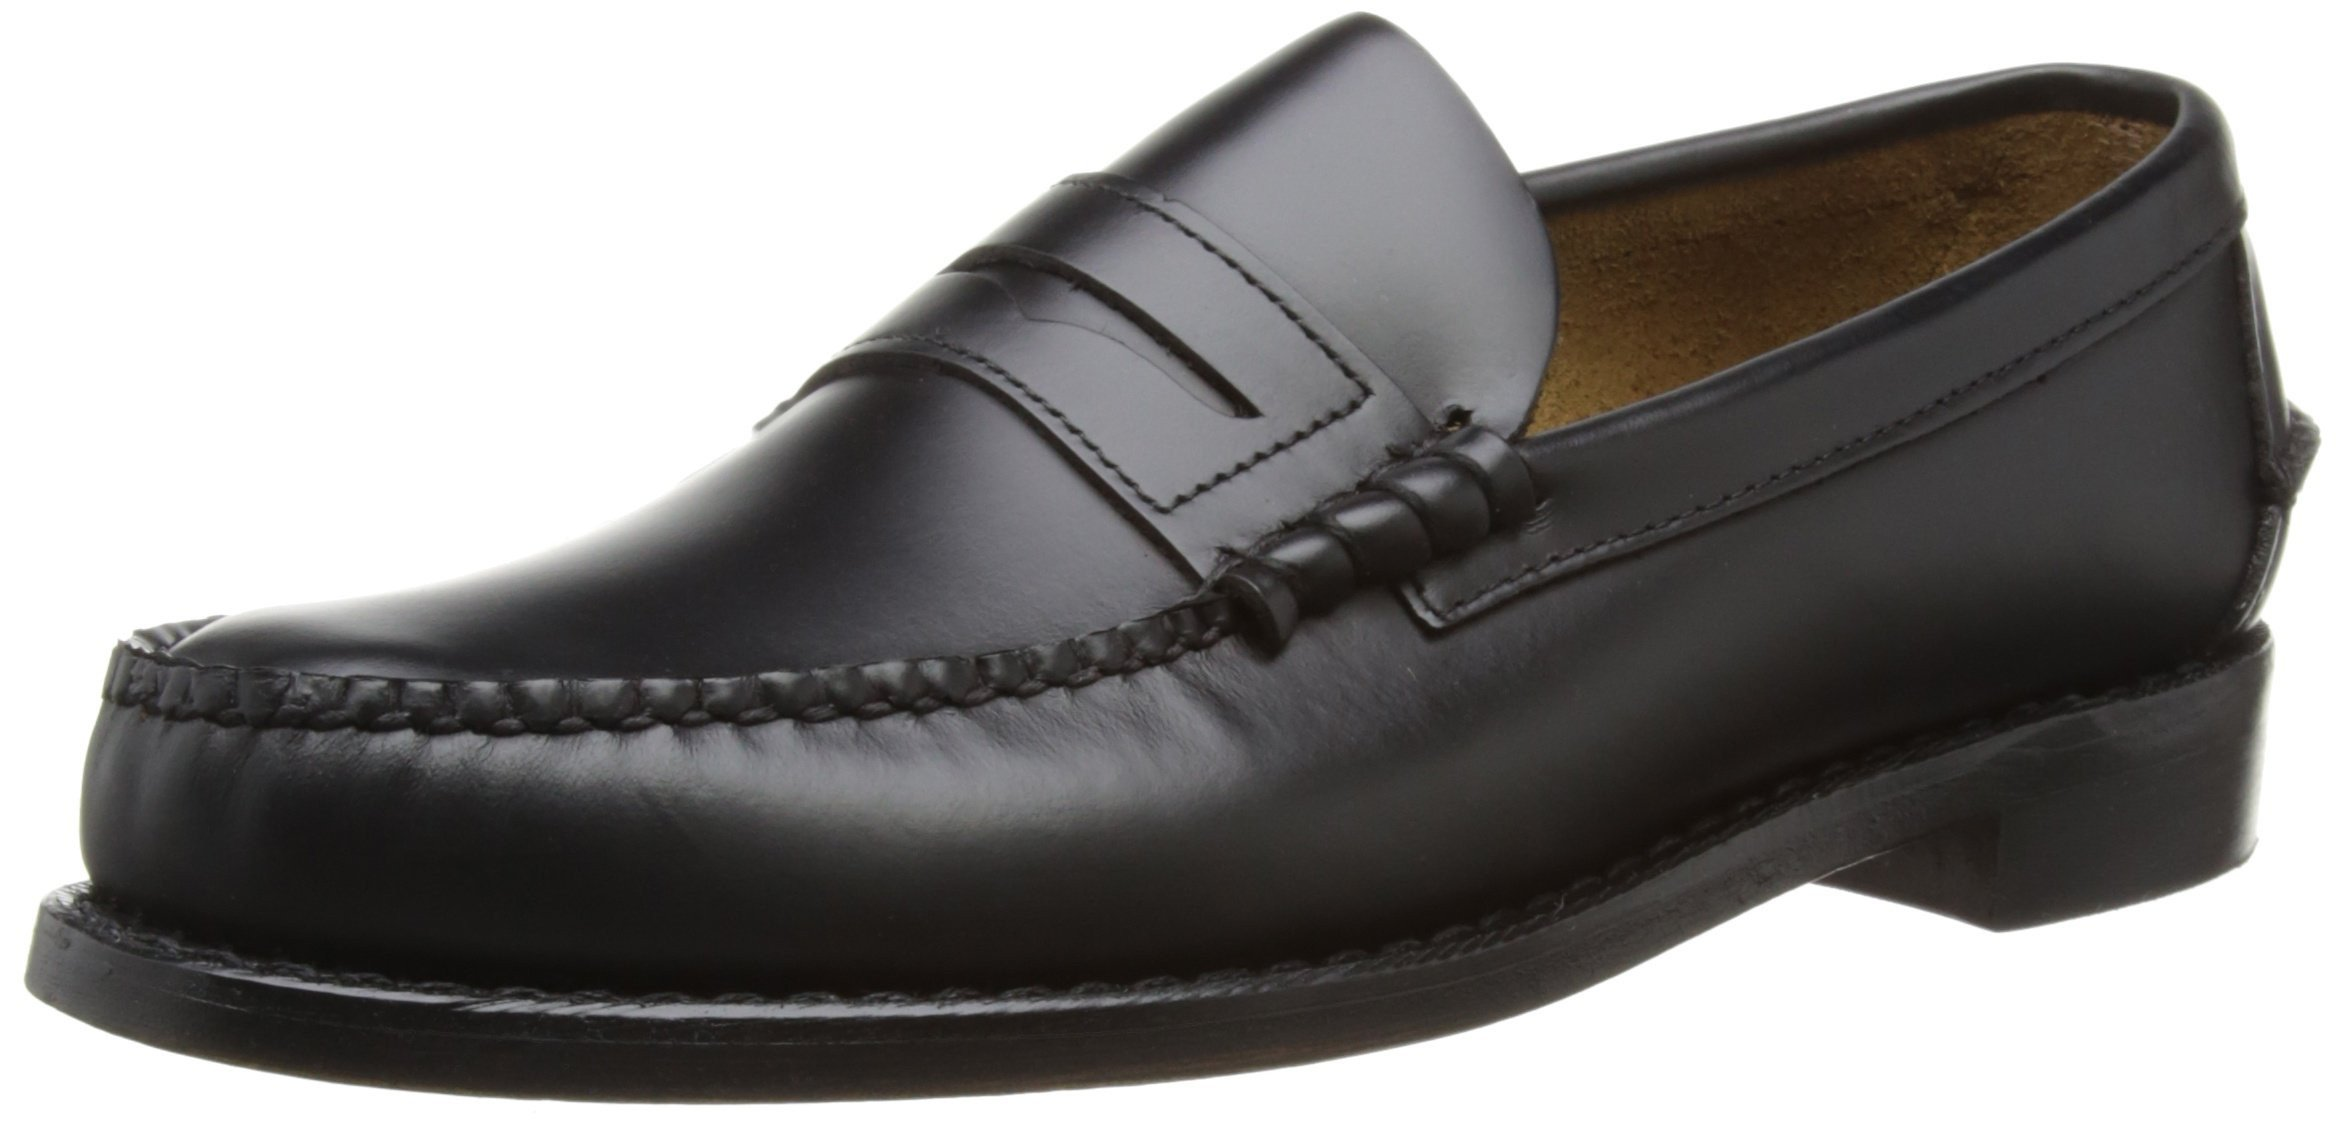 Sebago Men Classic Penny Loafers by Wolverine World Wide